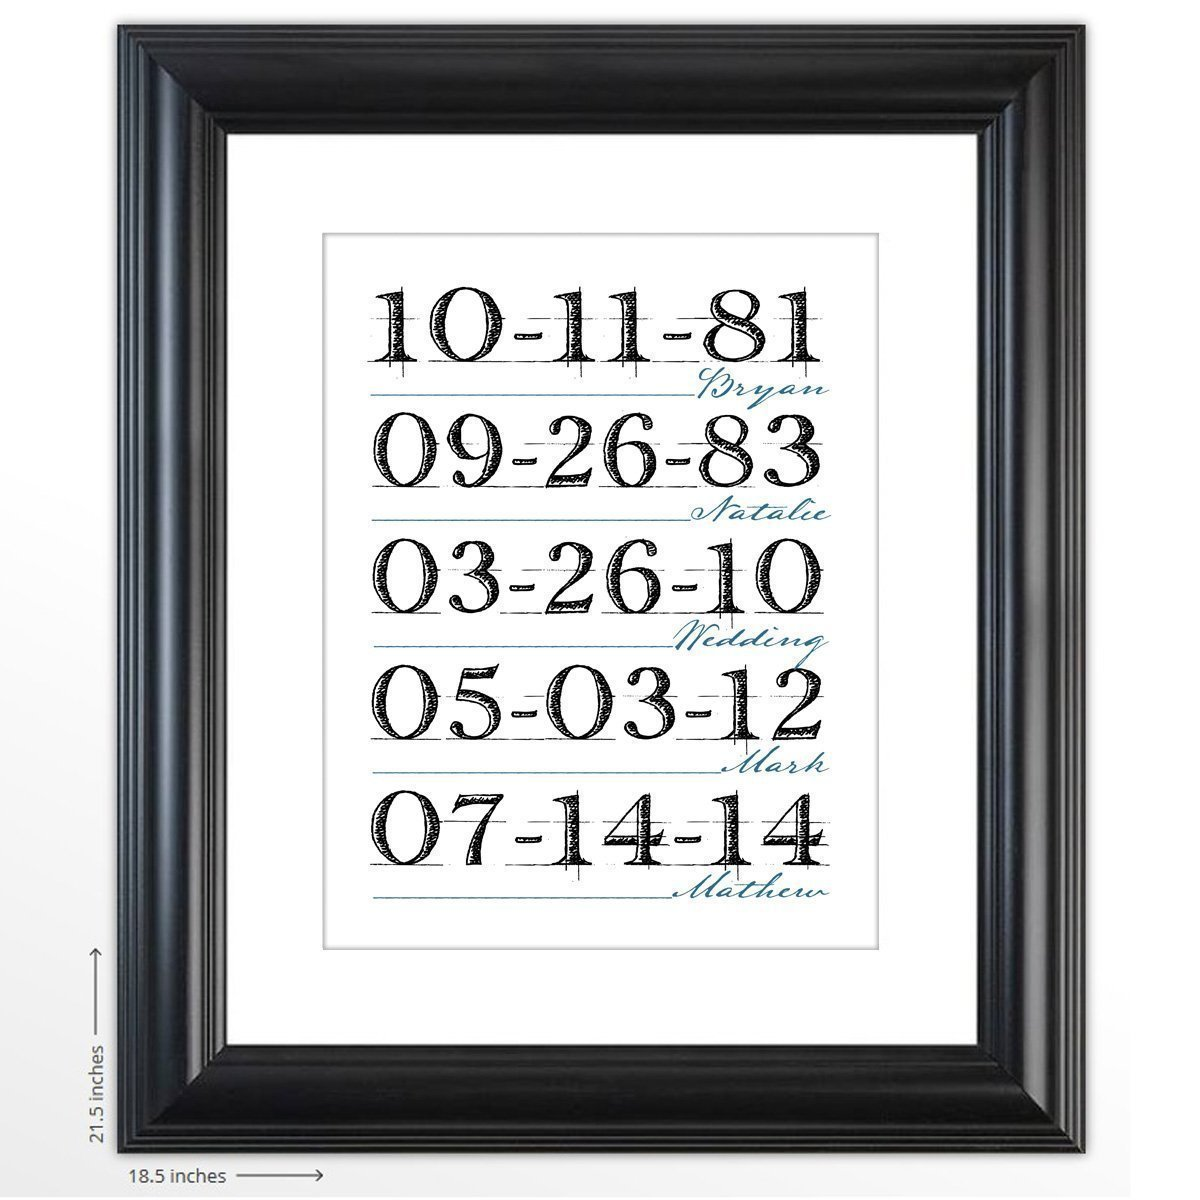 Personalized Unique Print - ''What a Difference a Day Makes'' - The Perfect Present for an Anniversary or for Mother's Day - Customized Framed Print Includes Names and Special Dates